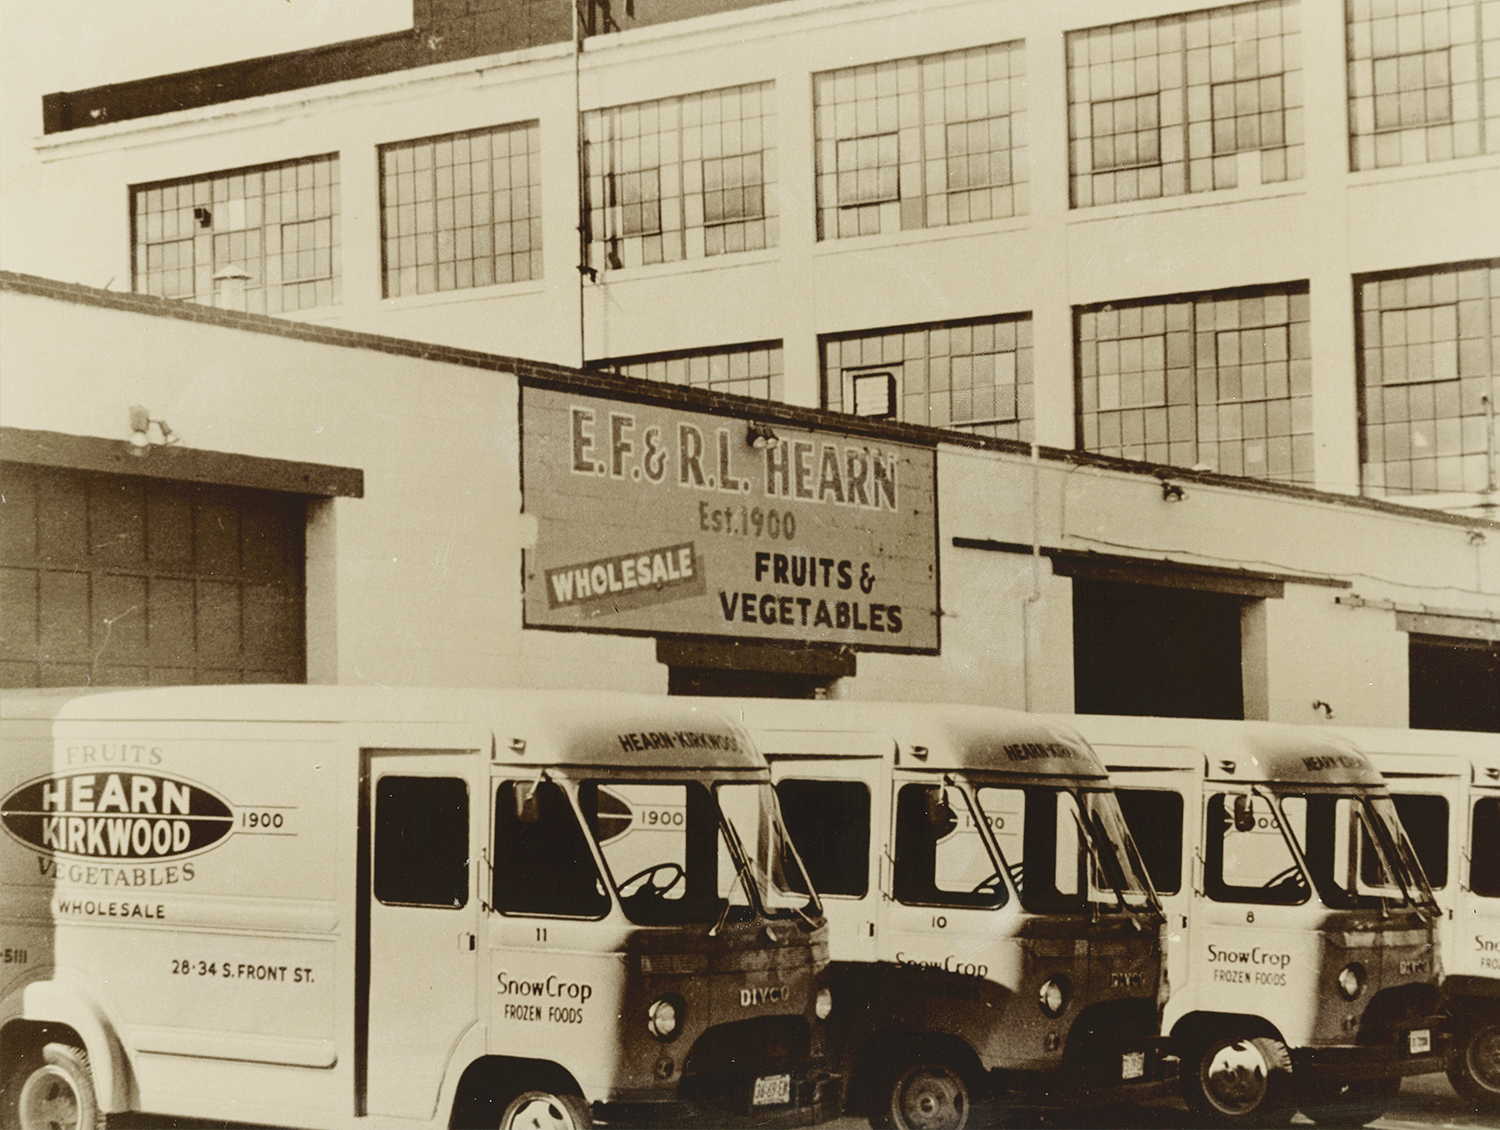 History - Our doors first opened in April 1946. From the beginning, we have been dedicated to providing our customers with the freshest produce and most innovative products. What began as a downtown storefront in the heart of Baltimore City has grown into 110,000 square feet of space between two facilities. Our newest building is a 70,000 square foot state of the art production facility for our Prime Cuts and Food Unlimited divisions.